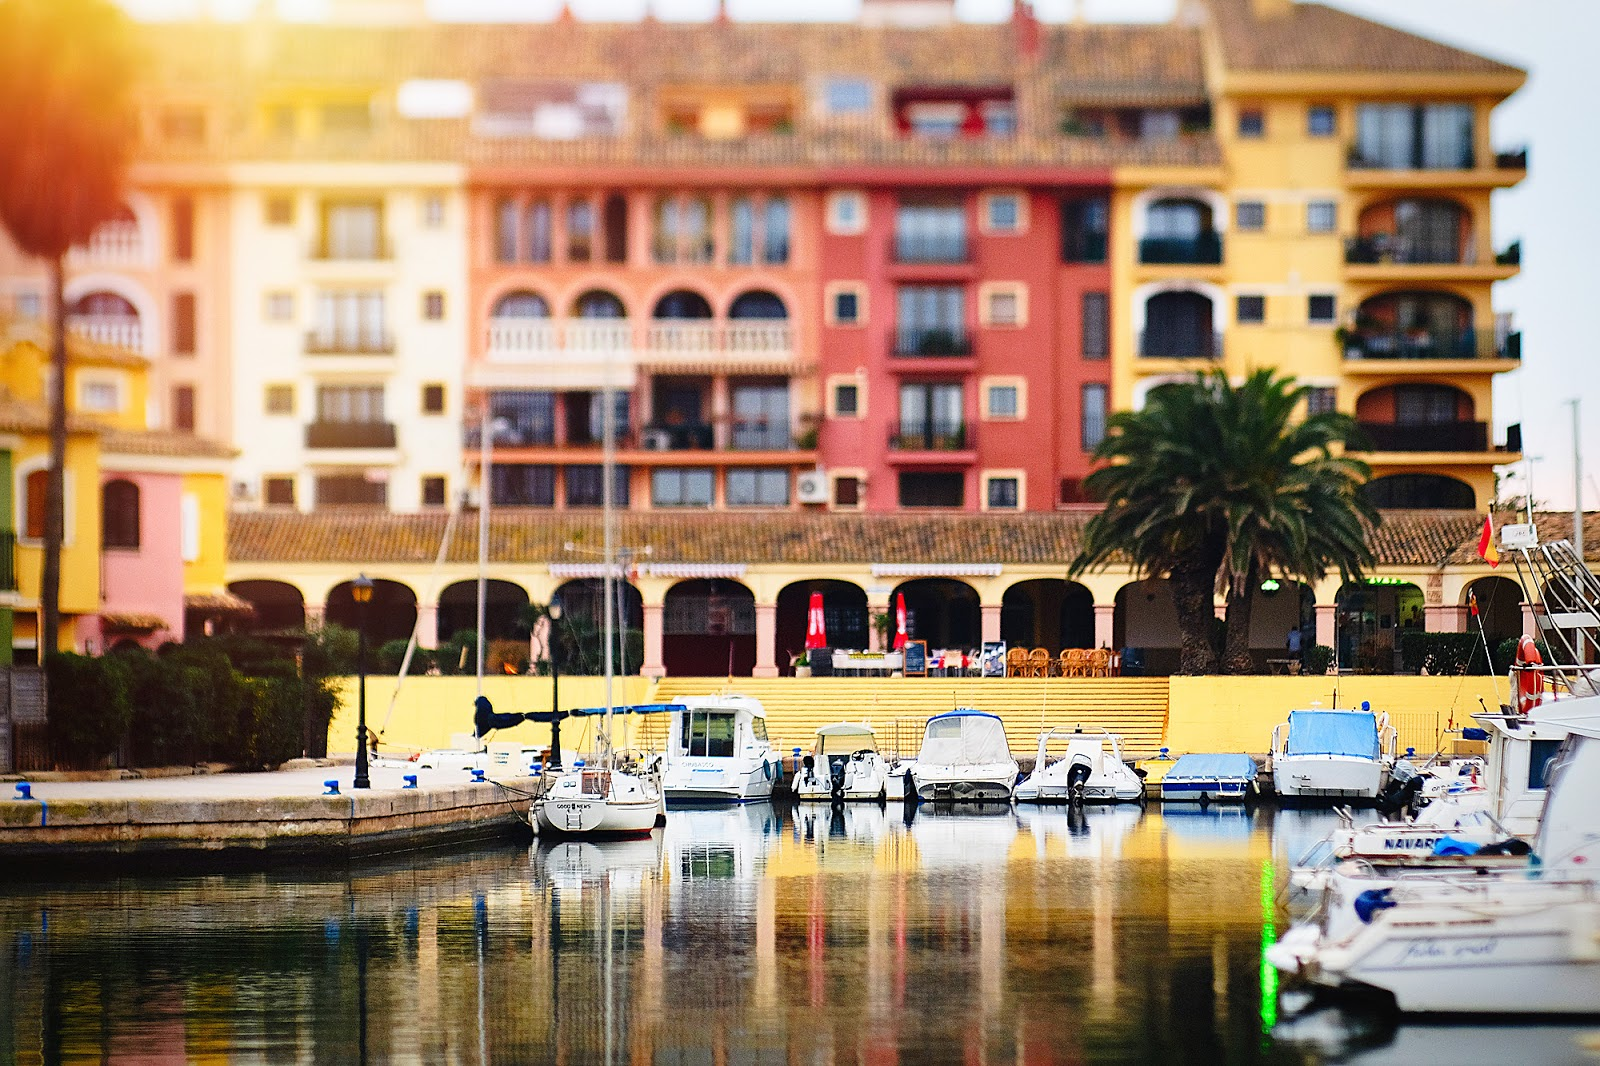 Lensbaby edge 80 image of little Venice in Valencia by Willie Kers